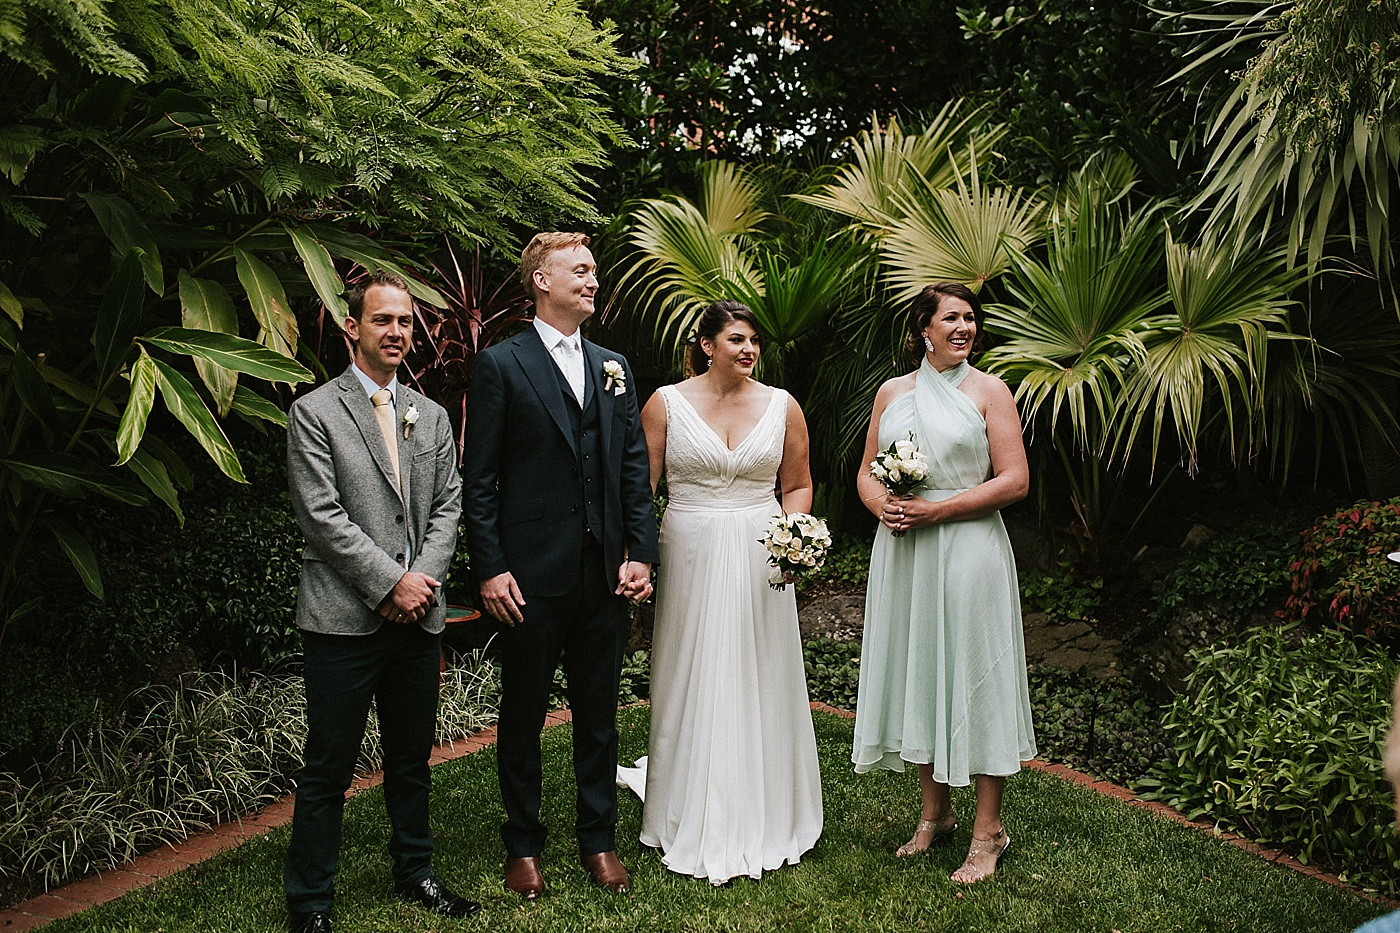 Brooke&David_Melbourne-Quirky-Relaxed-Fun-Casual-Backyard-Wedding_Melbourne-Wedding-Photography-42